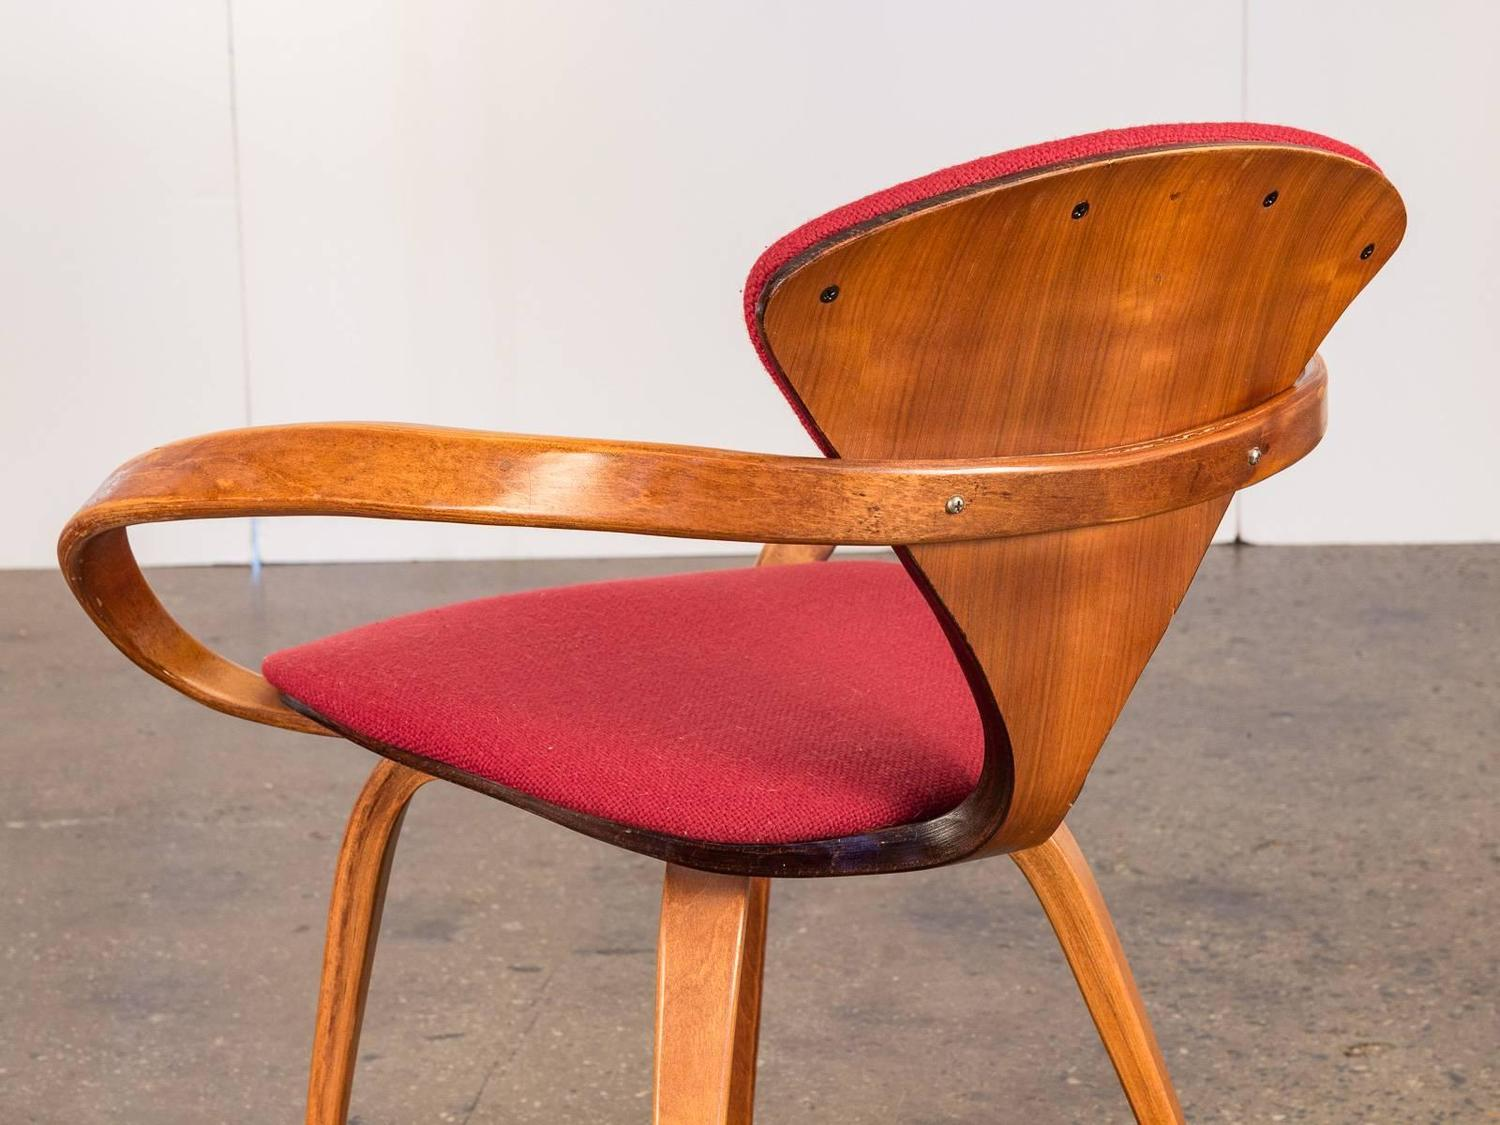 Pretzel Chair Plycraft Norman Cherner Pretzel Chair At 1stdibs